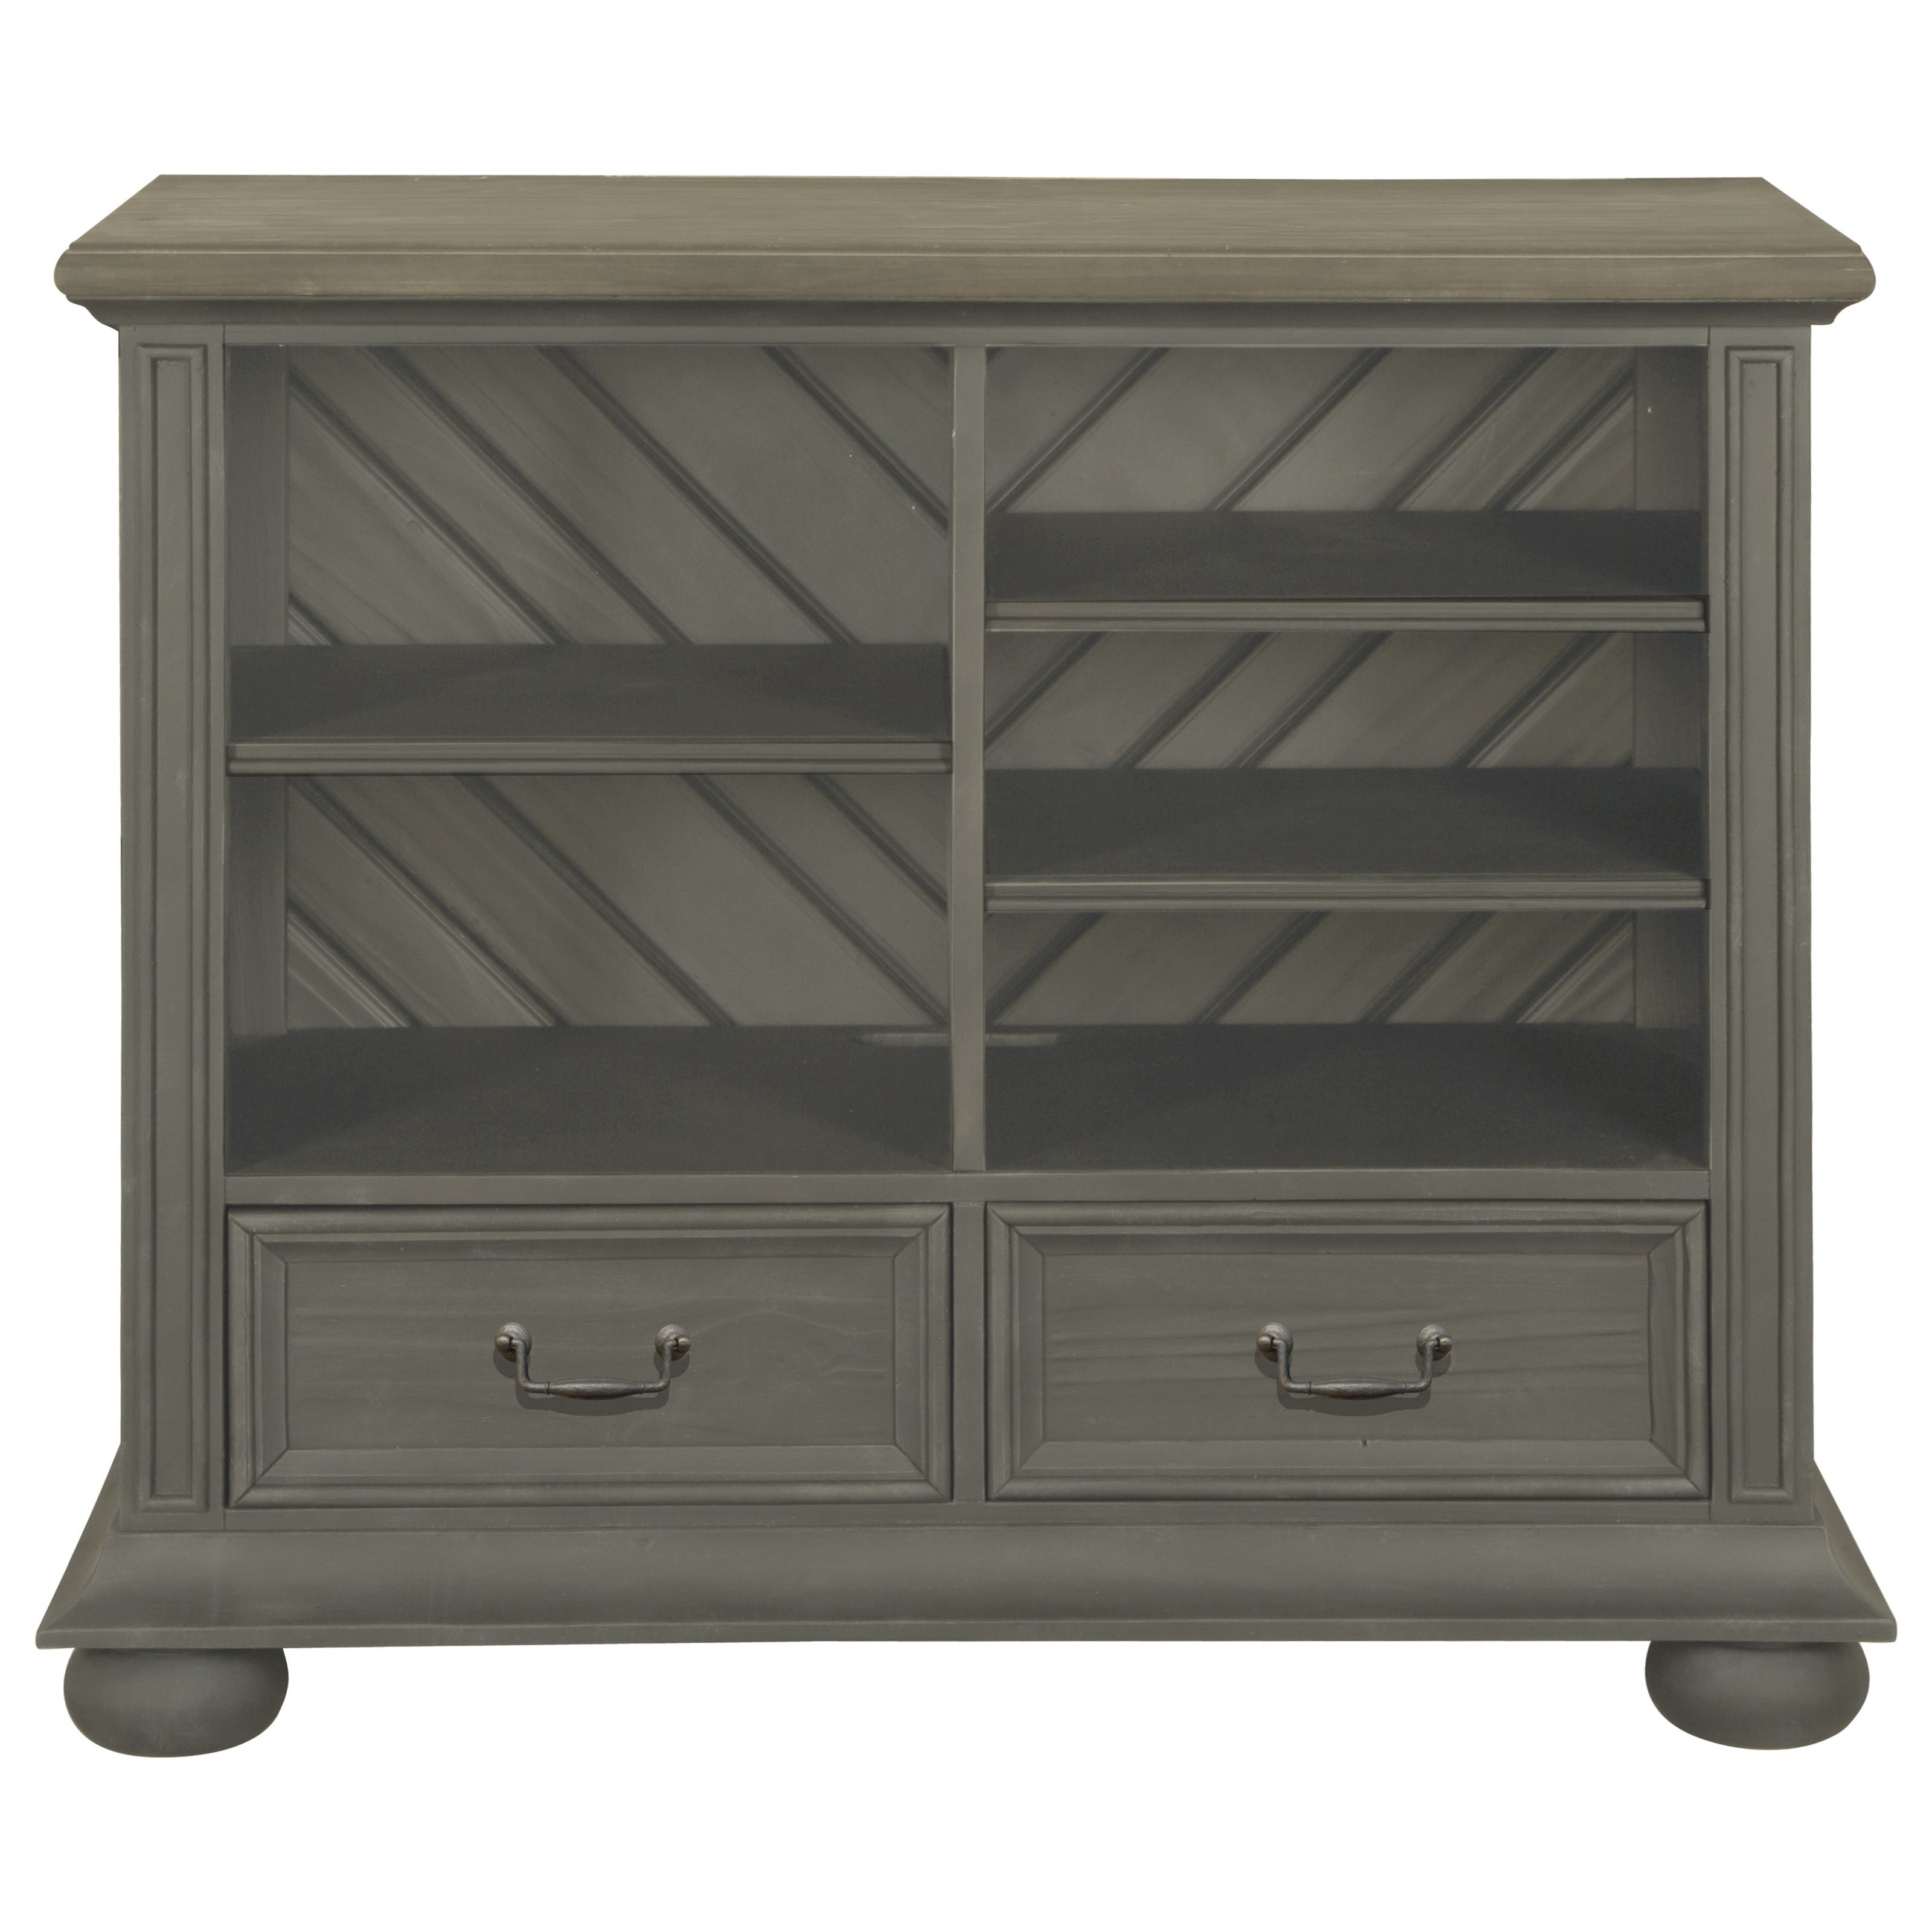 Cheswick Media Chest by Magnussen Home at Value City Furniture